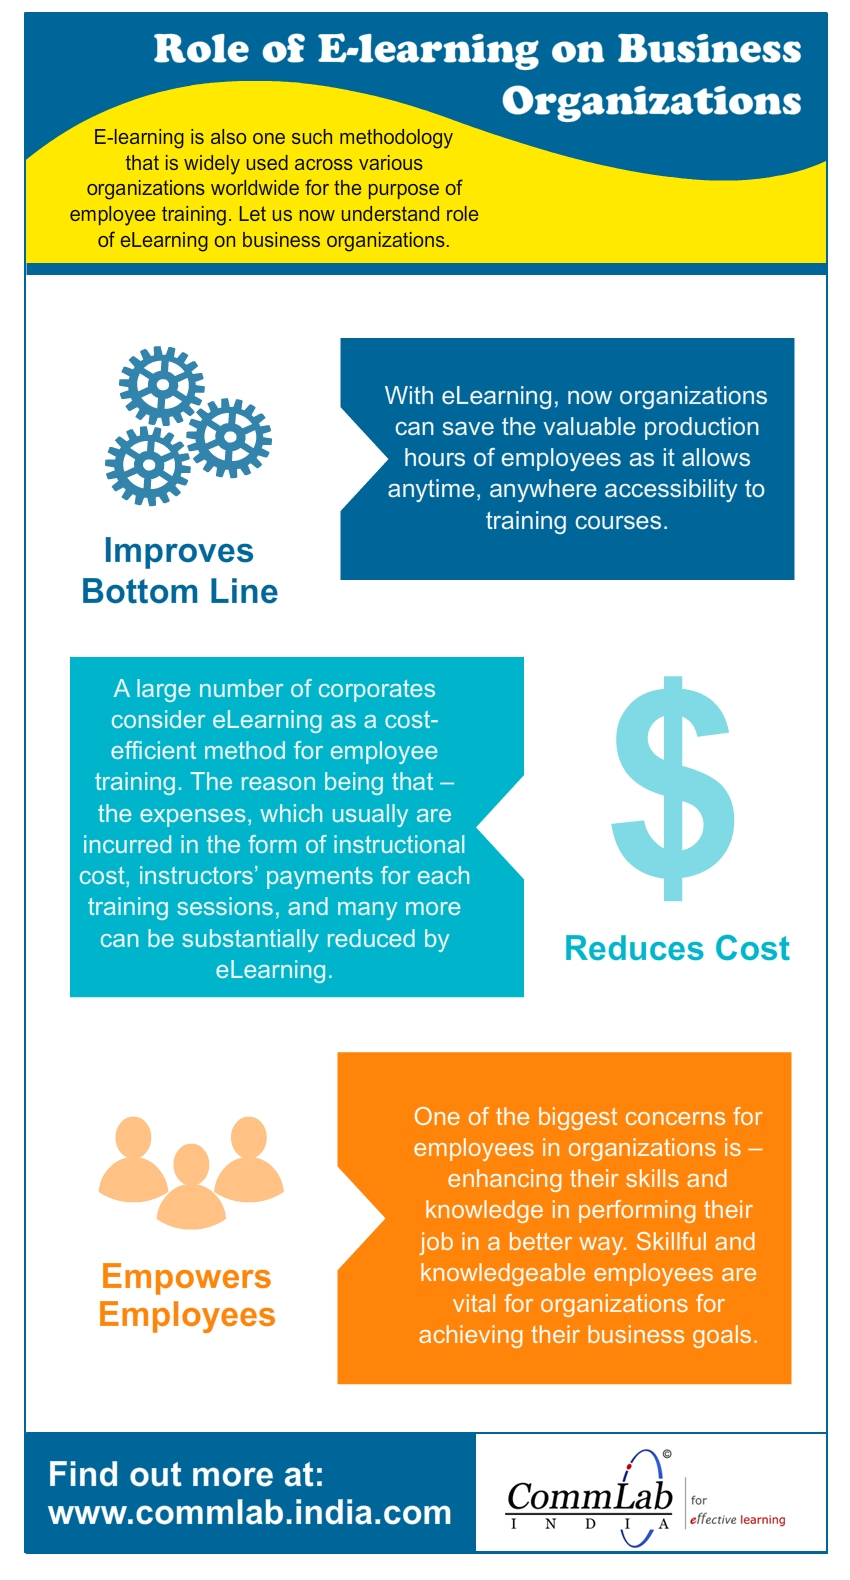 Benefits of Using E-Learning in Organizations – An Infographic